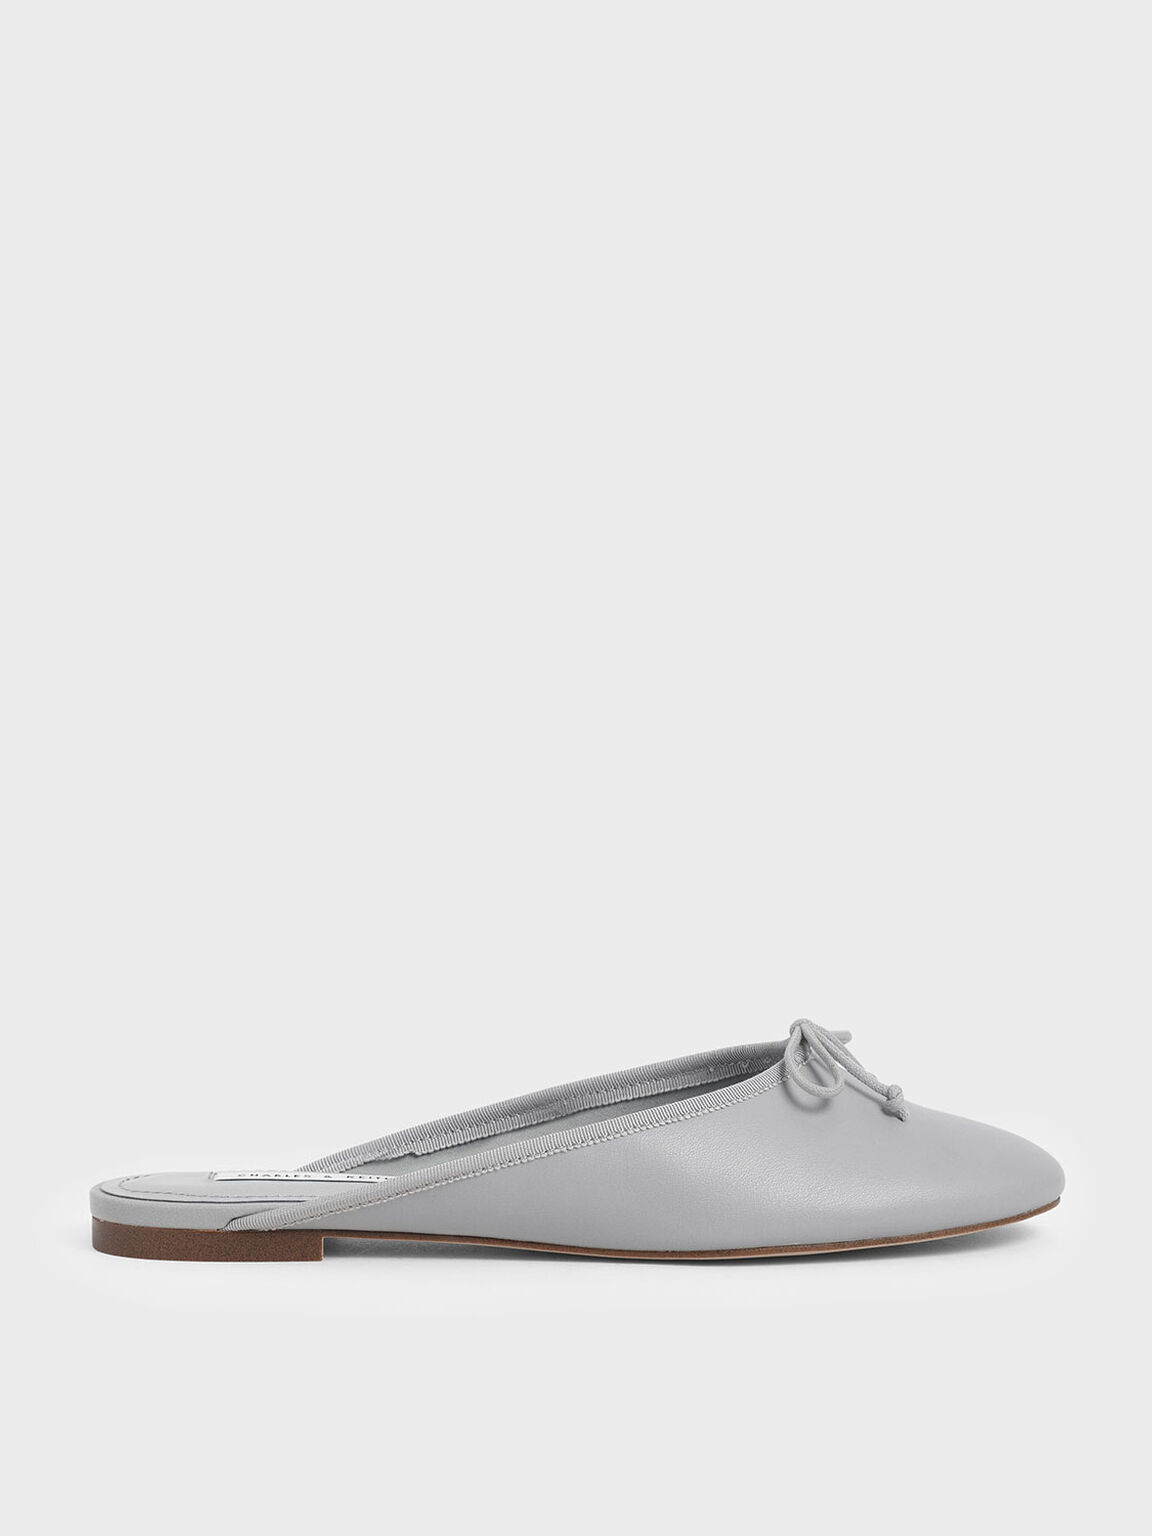 Bow Flat Mules, Grey, hi-res